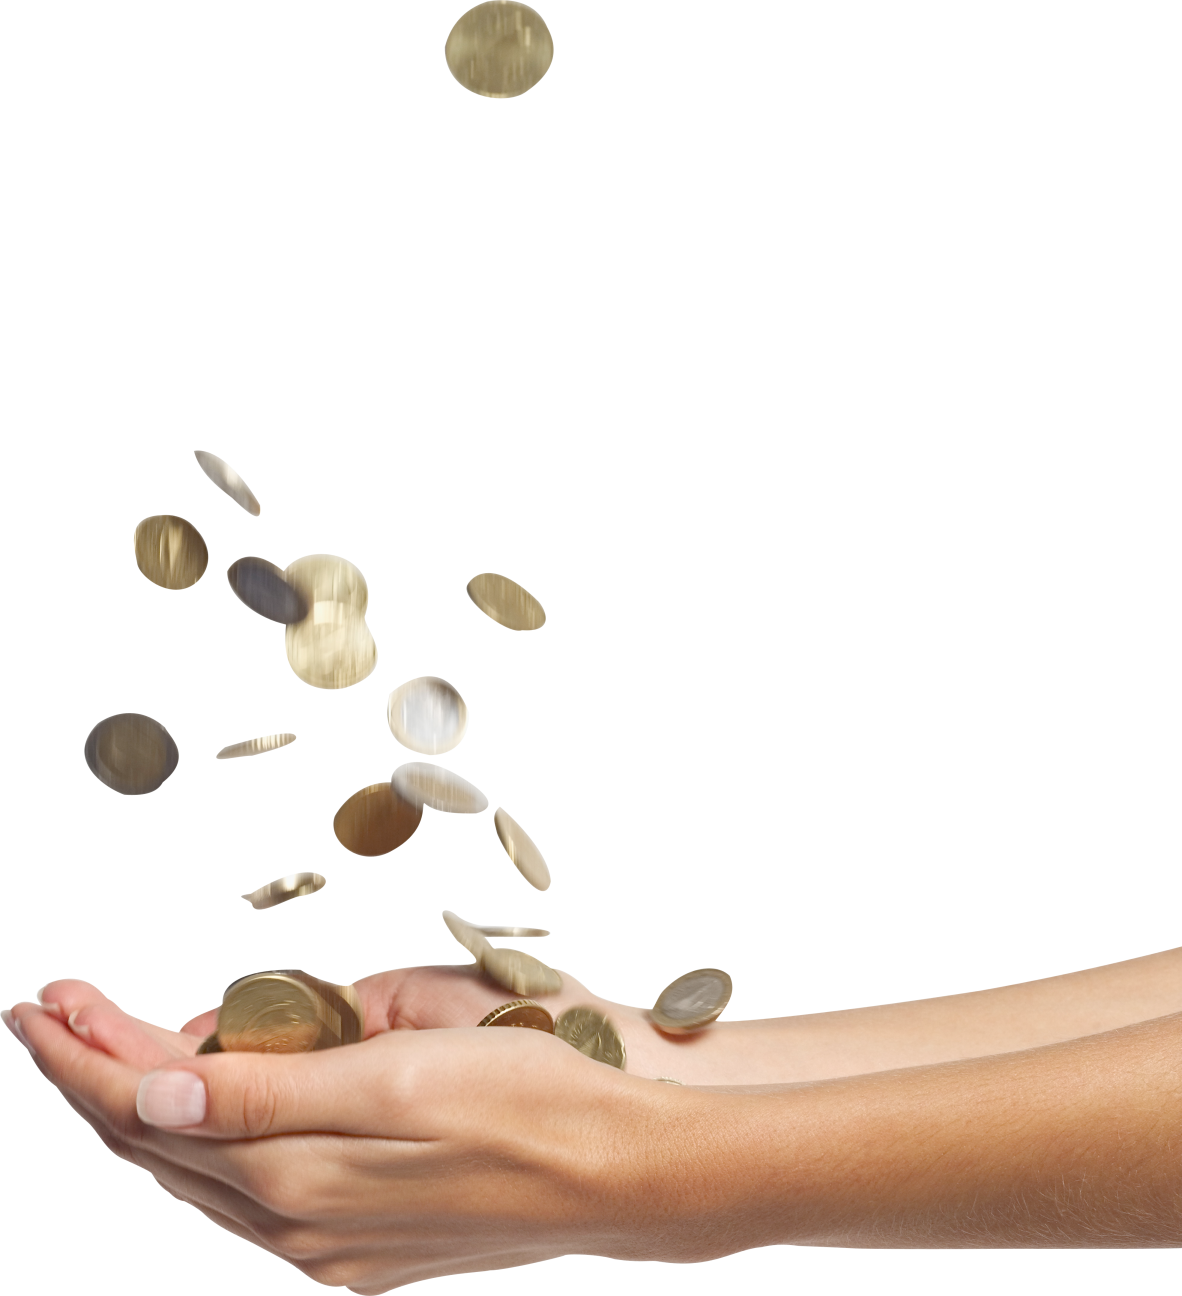 Falling money clipart png library download Falling Money PNG Clipart | Web Icons PNG png library download